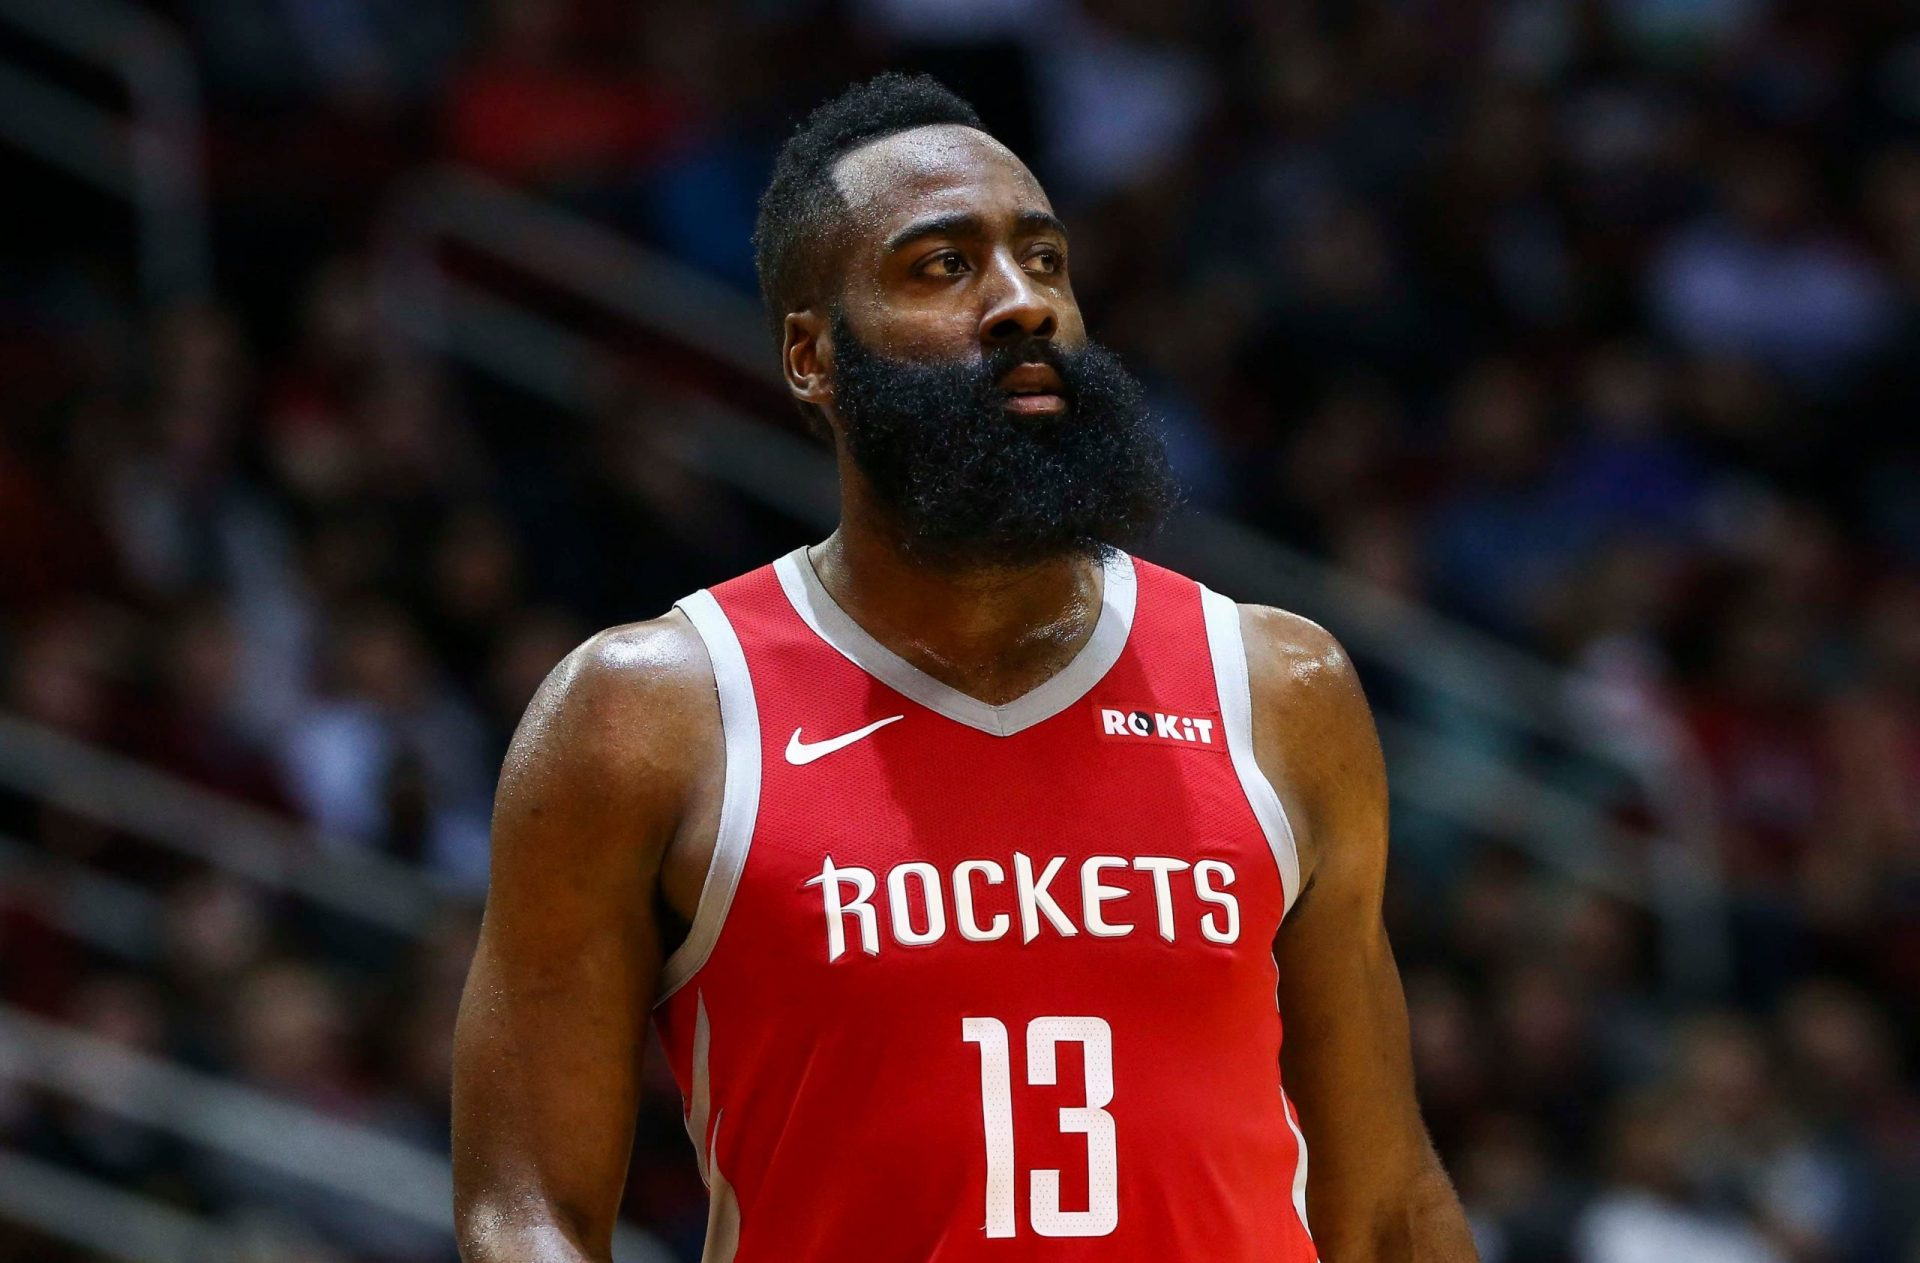 James Harden reportedly declines Rockets extension, eyeing a move to Nets - THE SPORTS ROOM